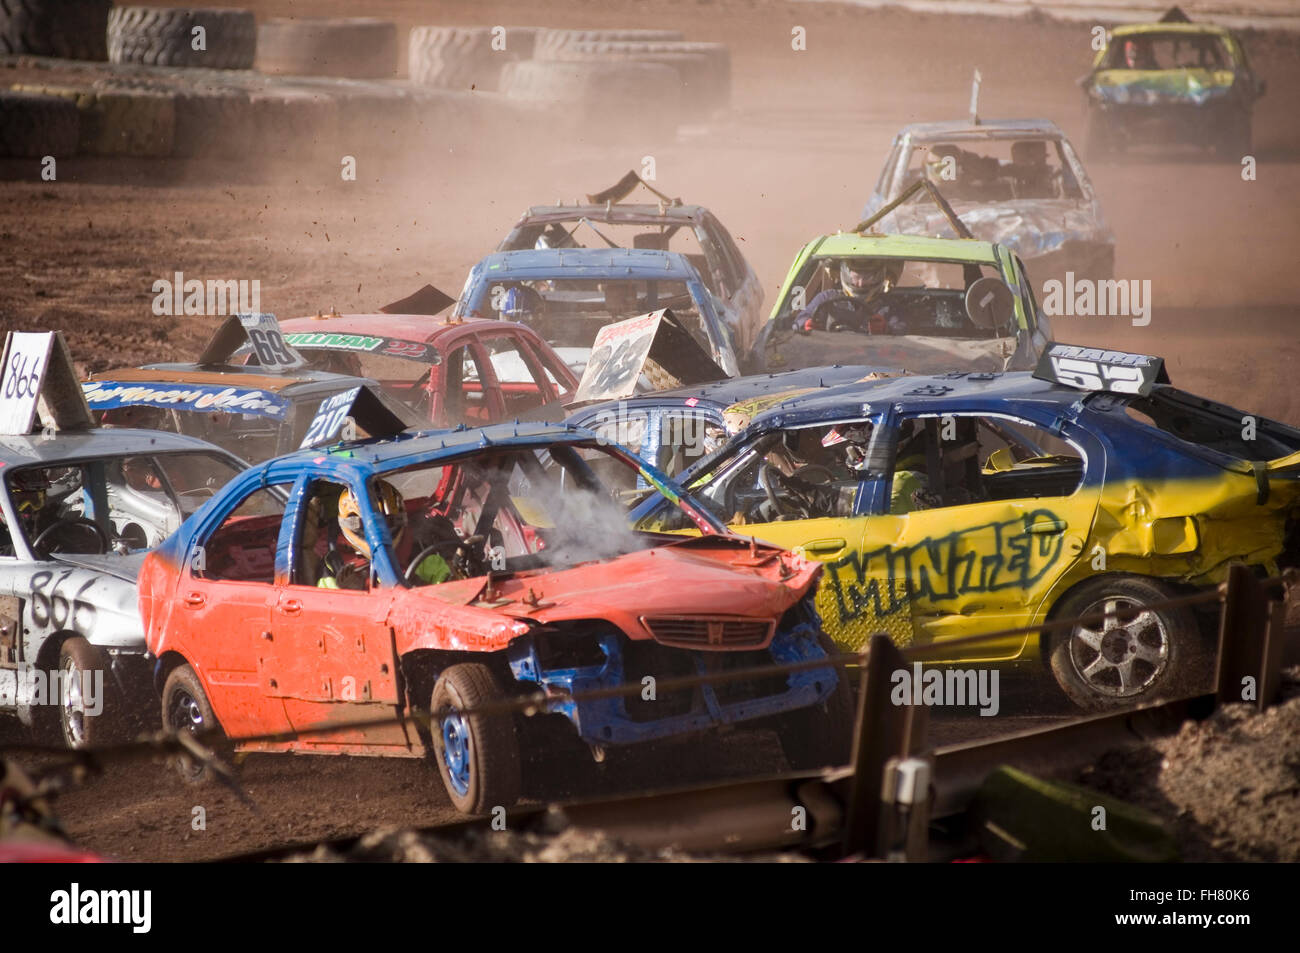 Collisions Stock Photos Images Alamy Demolition Derby Car Wiring Diagram Cars Colliding Collision Crash Crashes Crashing Race Races Racing Track Tracks Shale Banger